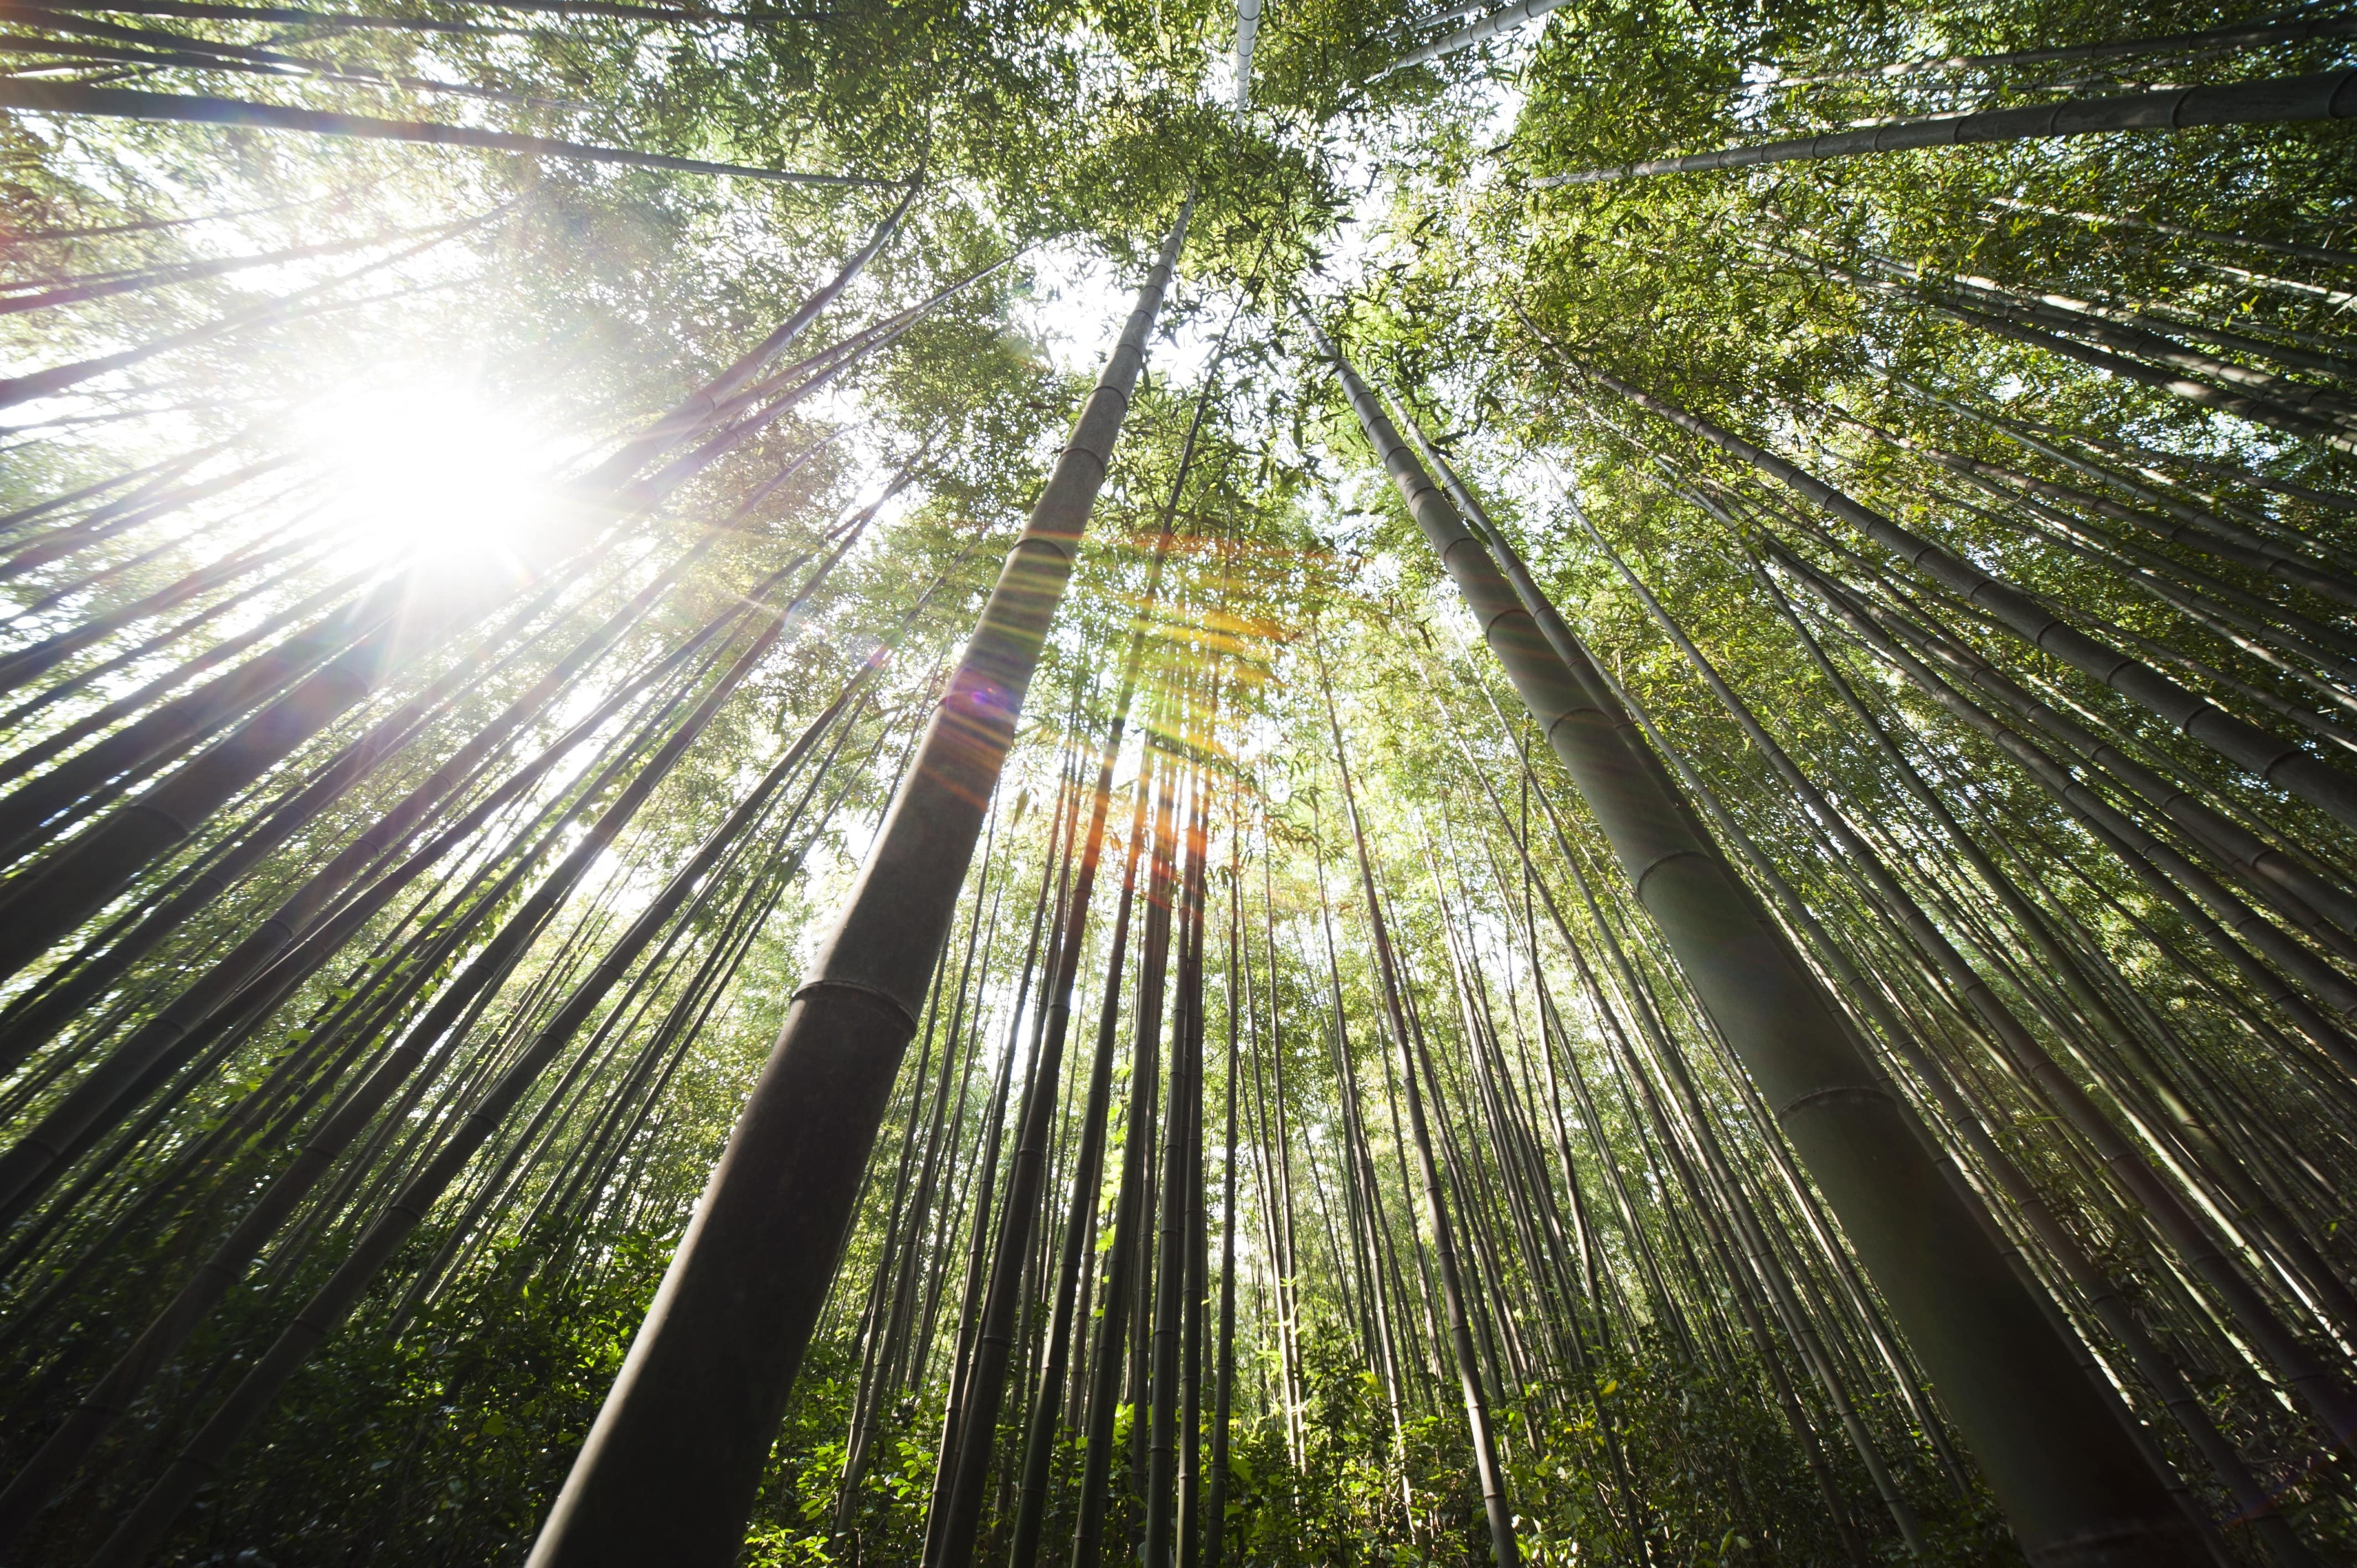 Bamboo is the most sustainable underwear fabric